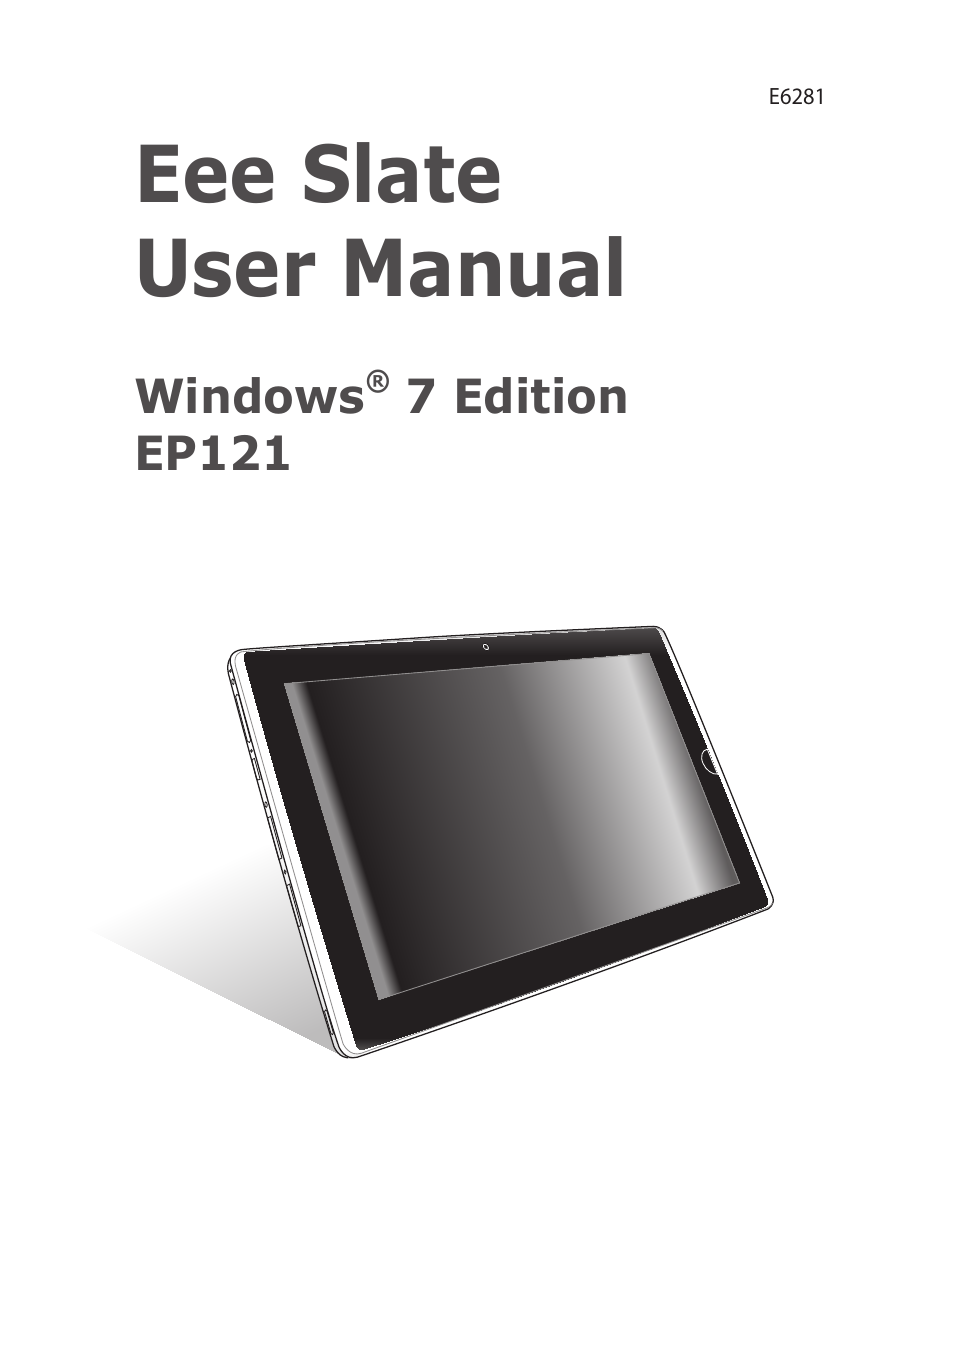 asus eee slate ep121 user manual 46 pages also for eee slate e6281 rh manualsdir com Asus Eee Slate Cases Asus Eee Pad Memo